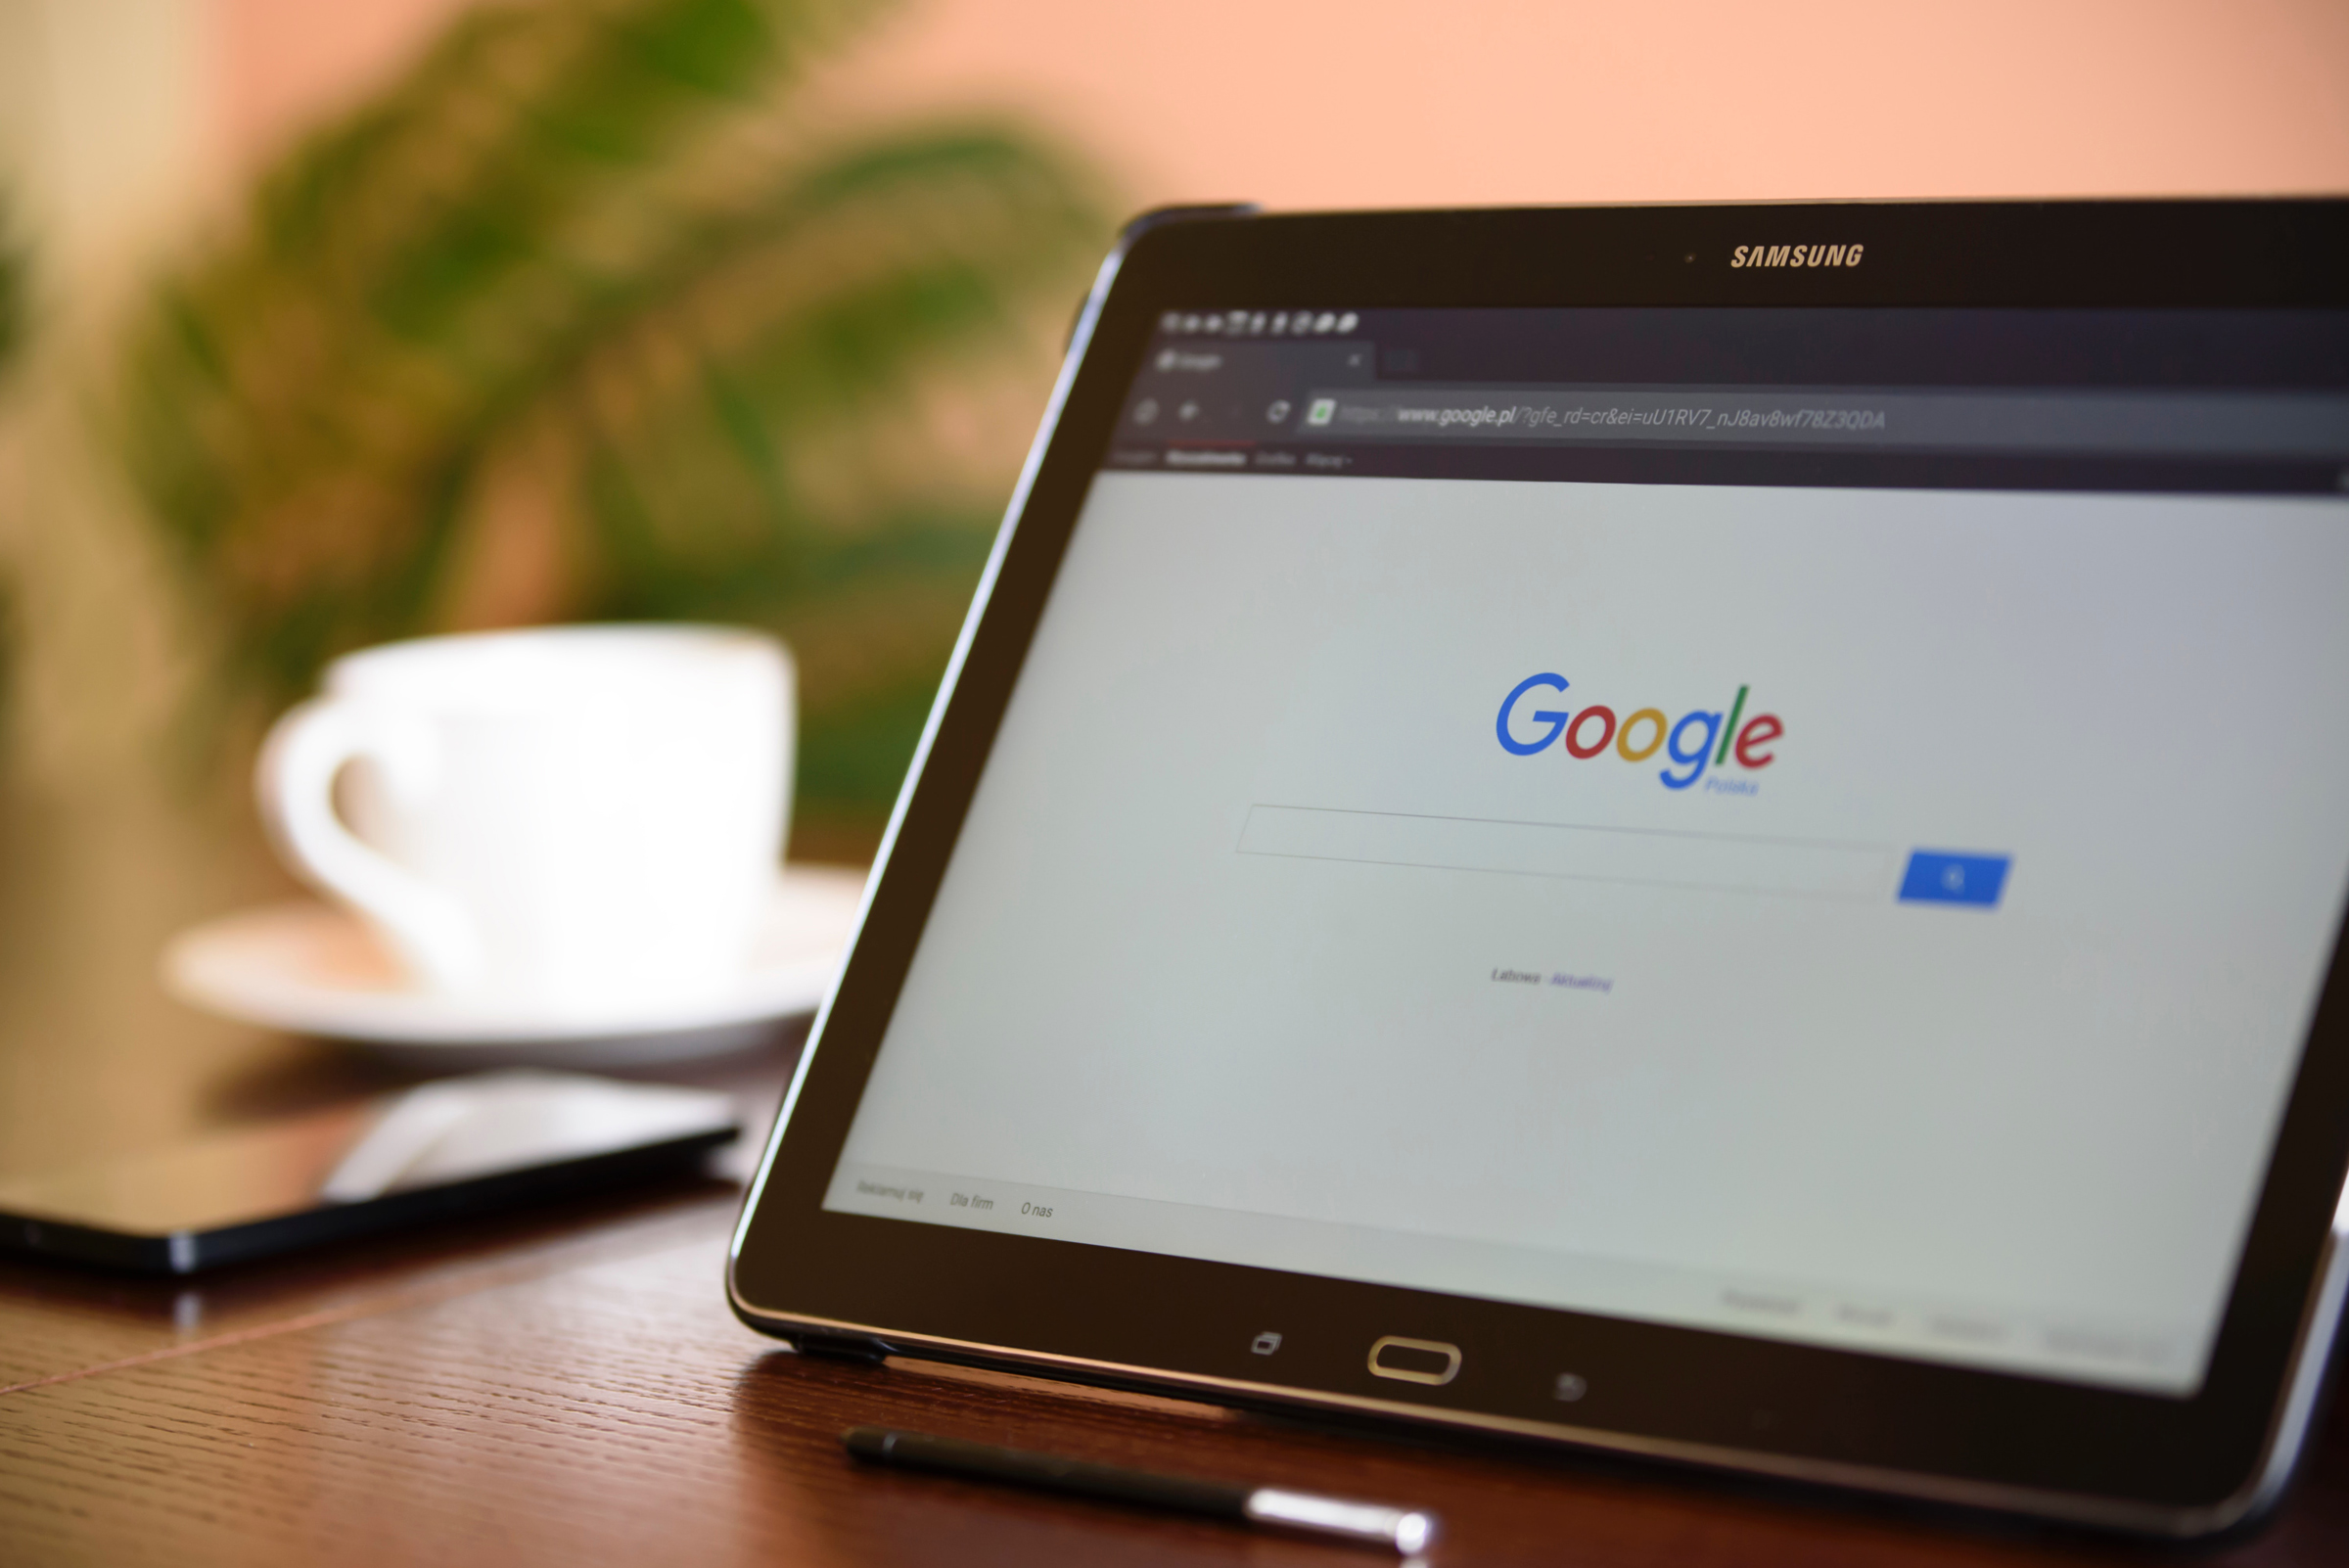 What I've Learnt About Good SEO And Best Practices To Boost Rankings